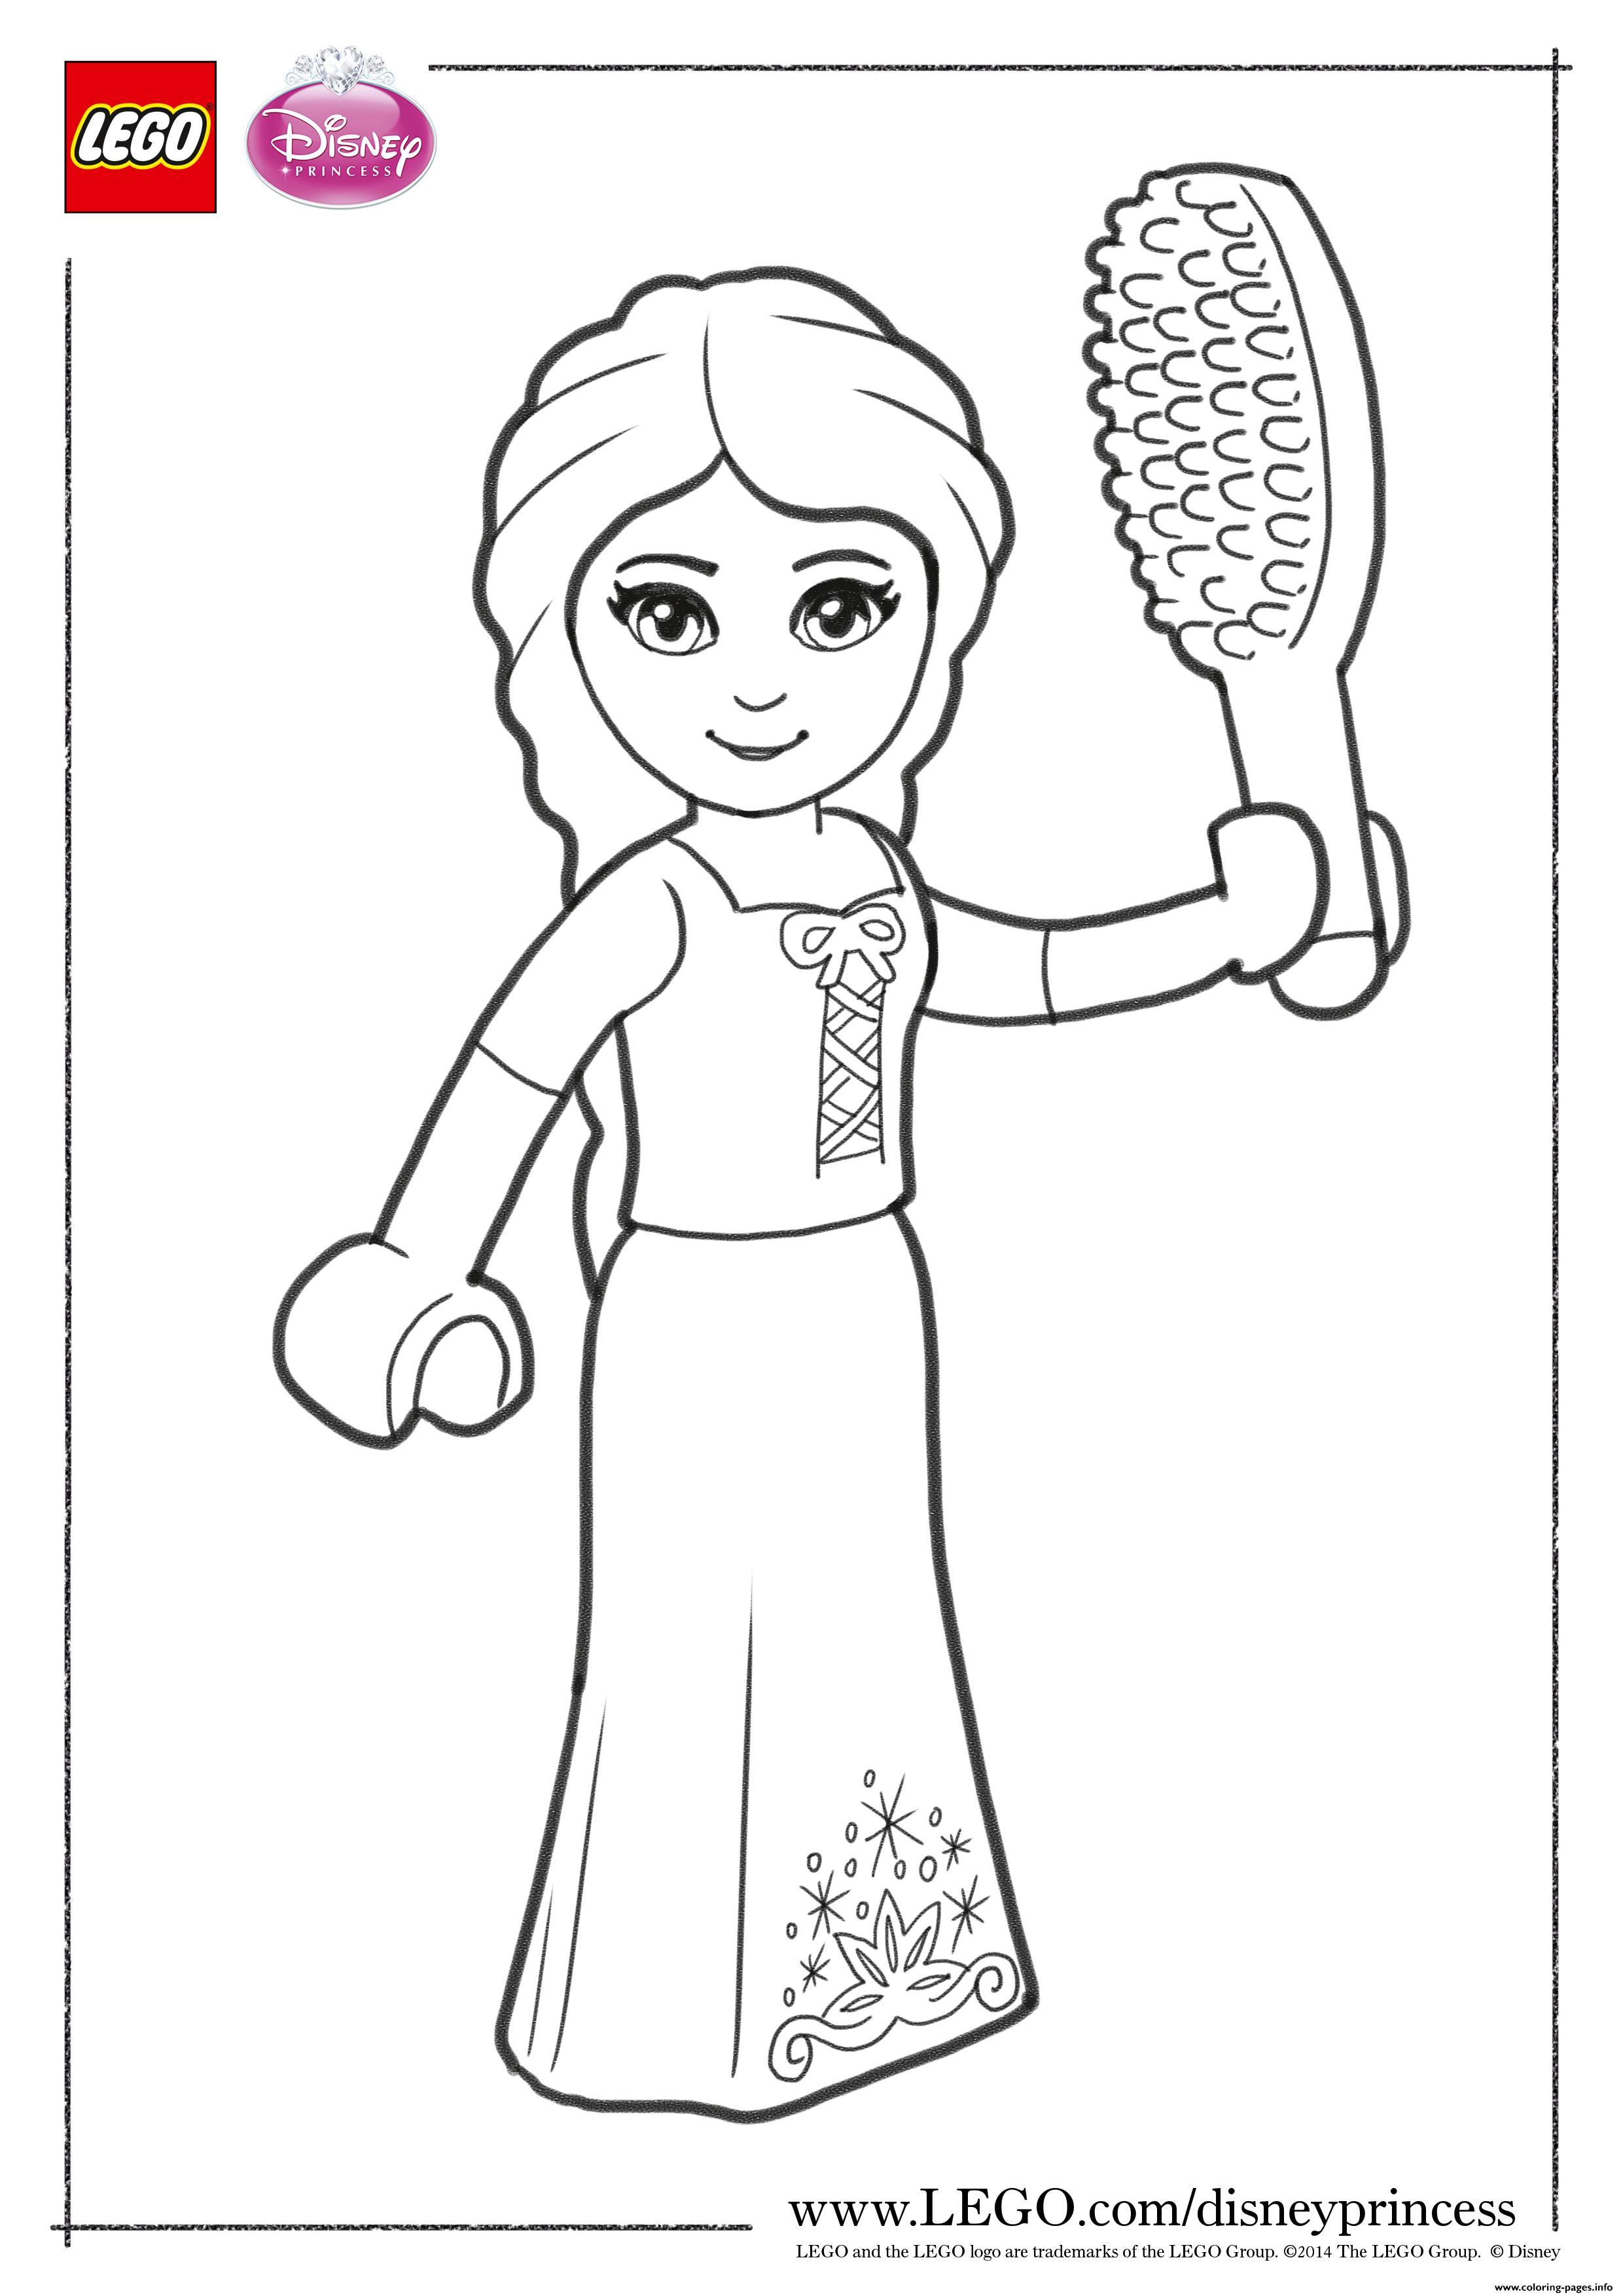 Disney up coloring sheets - Color Fun With Pumpkin Princess Lego Disney Coloring Pages